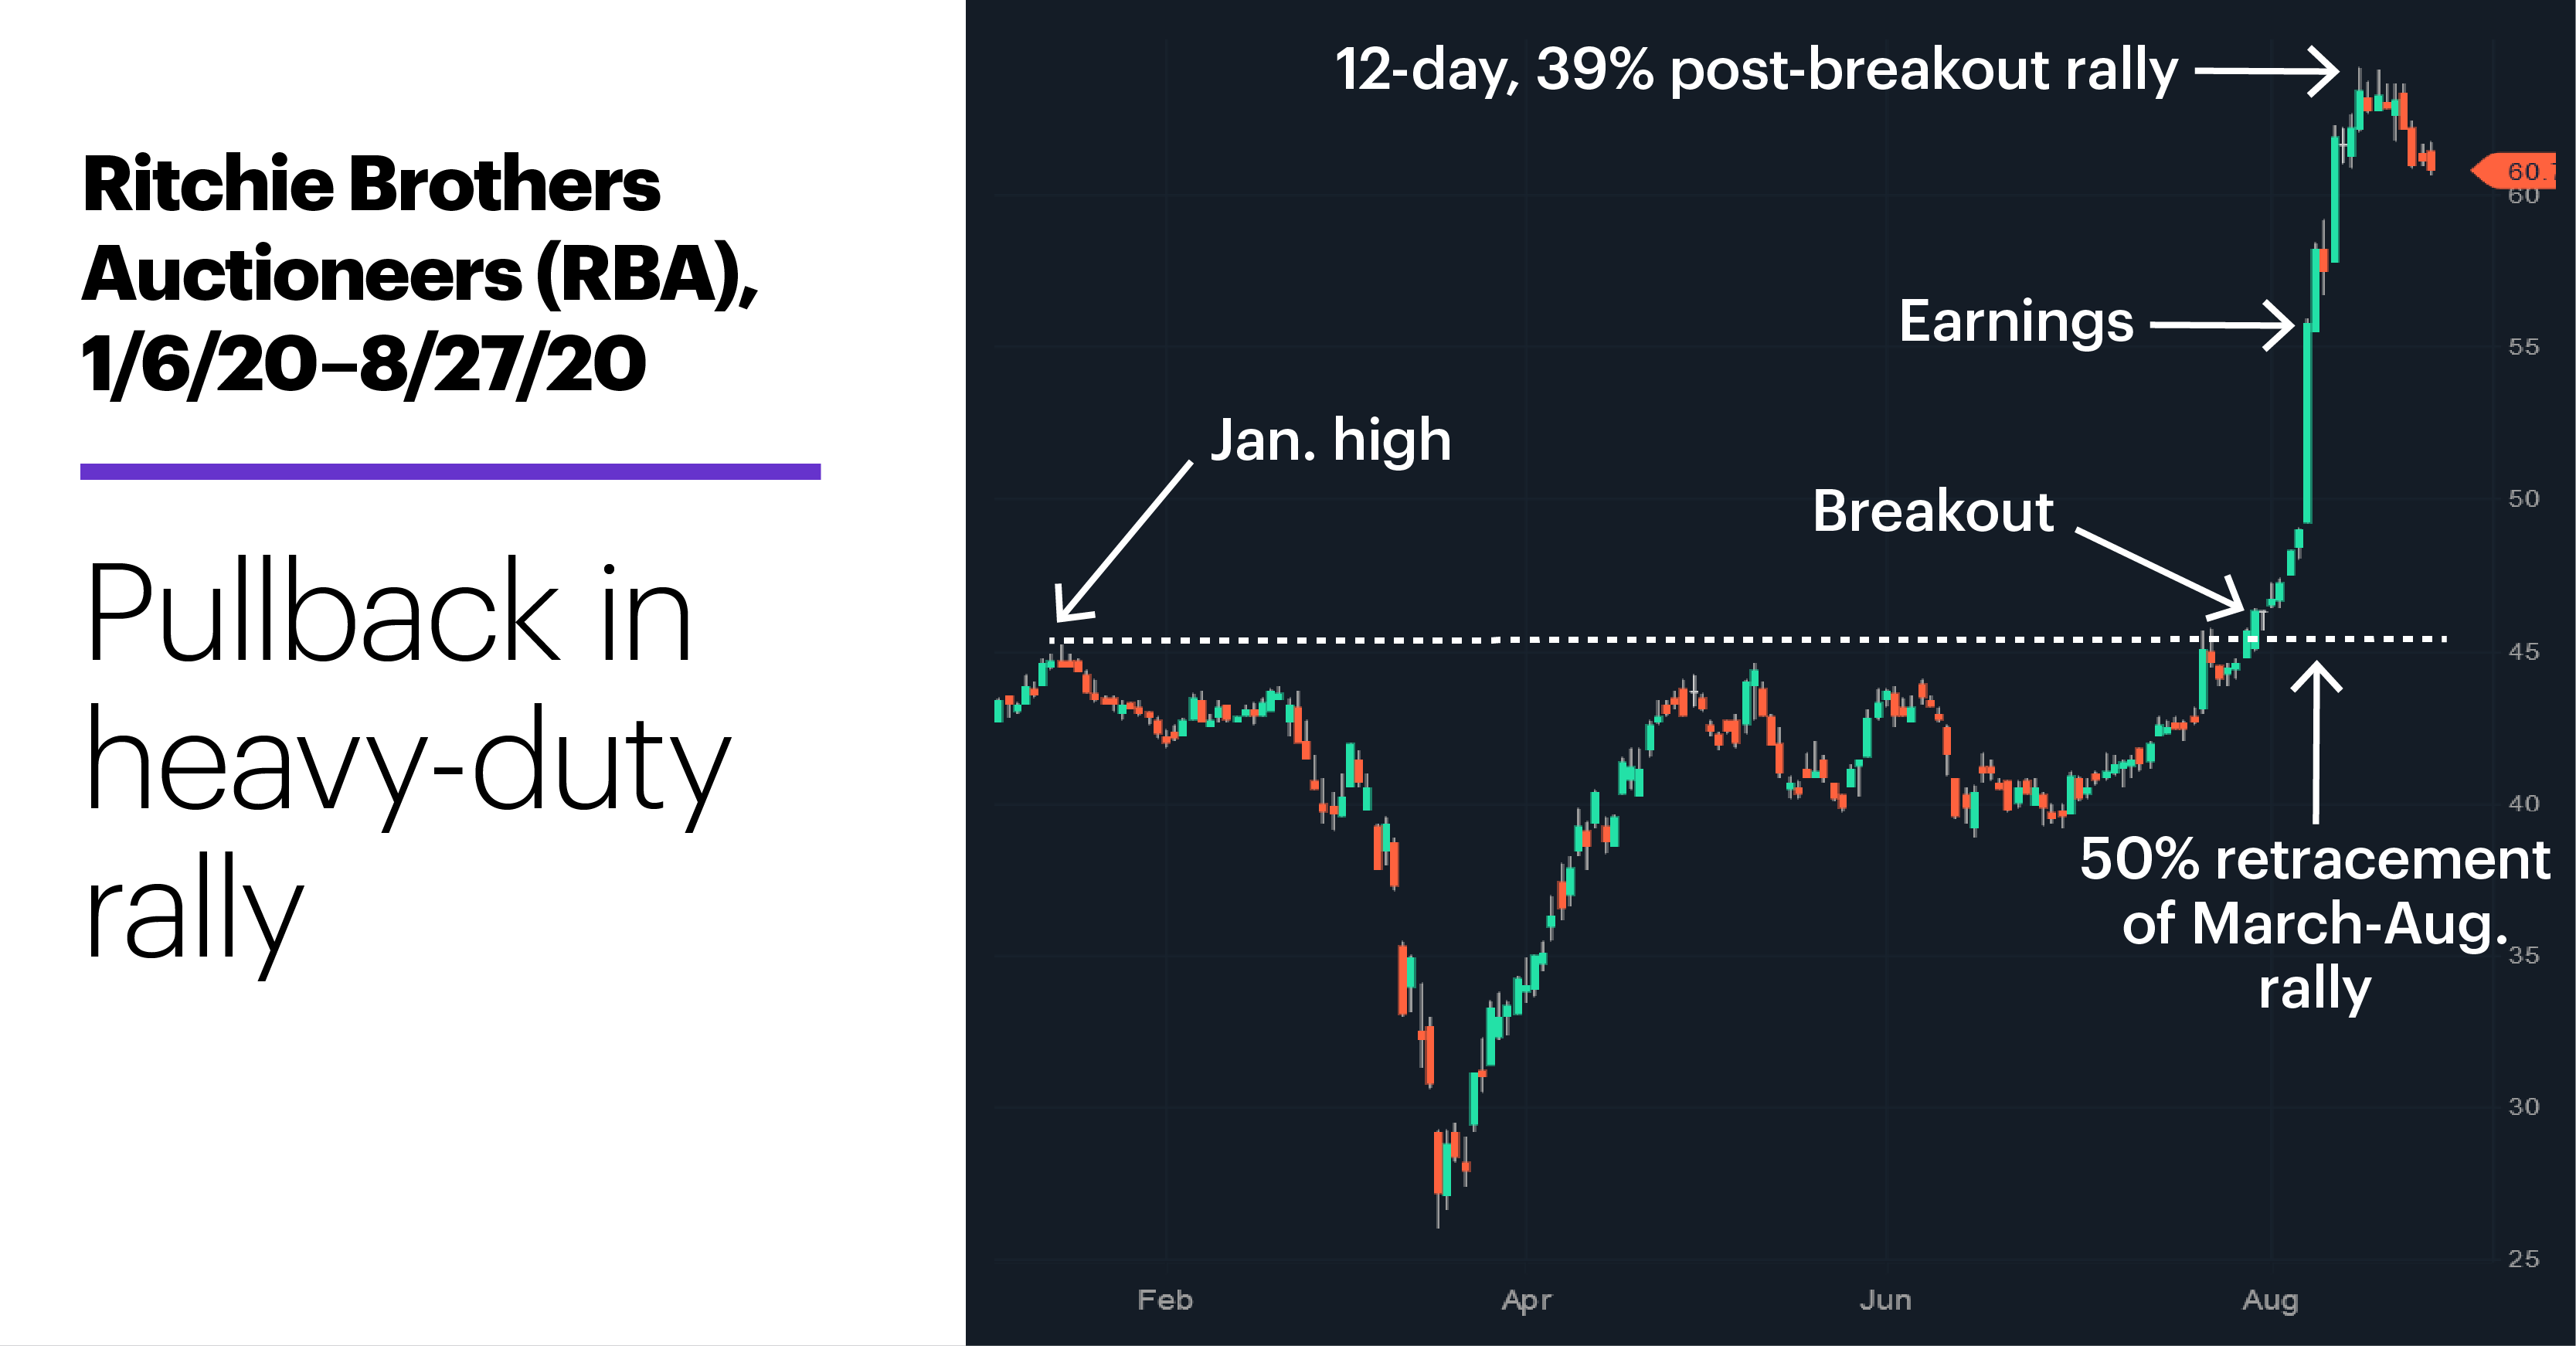 Chart 1: Ritchie Brothers (RBA), 1/6/20–8/27/20. Ritchie Brothers Auctioneers (RBA) price chart. Blurb: Heavy-duty rally.